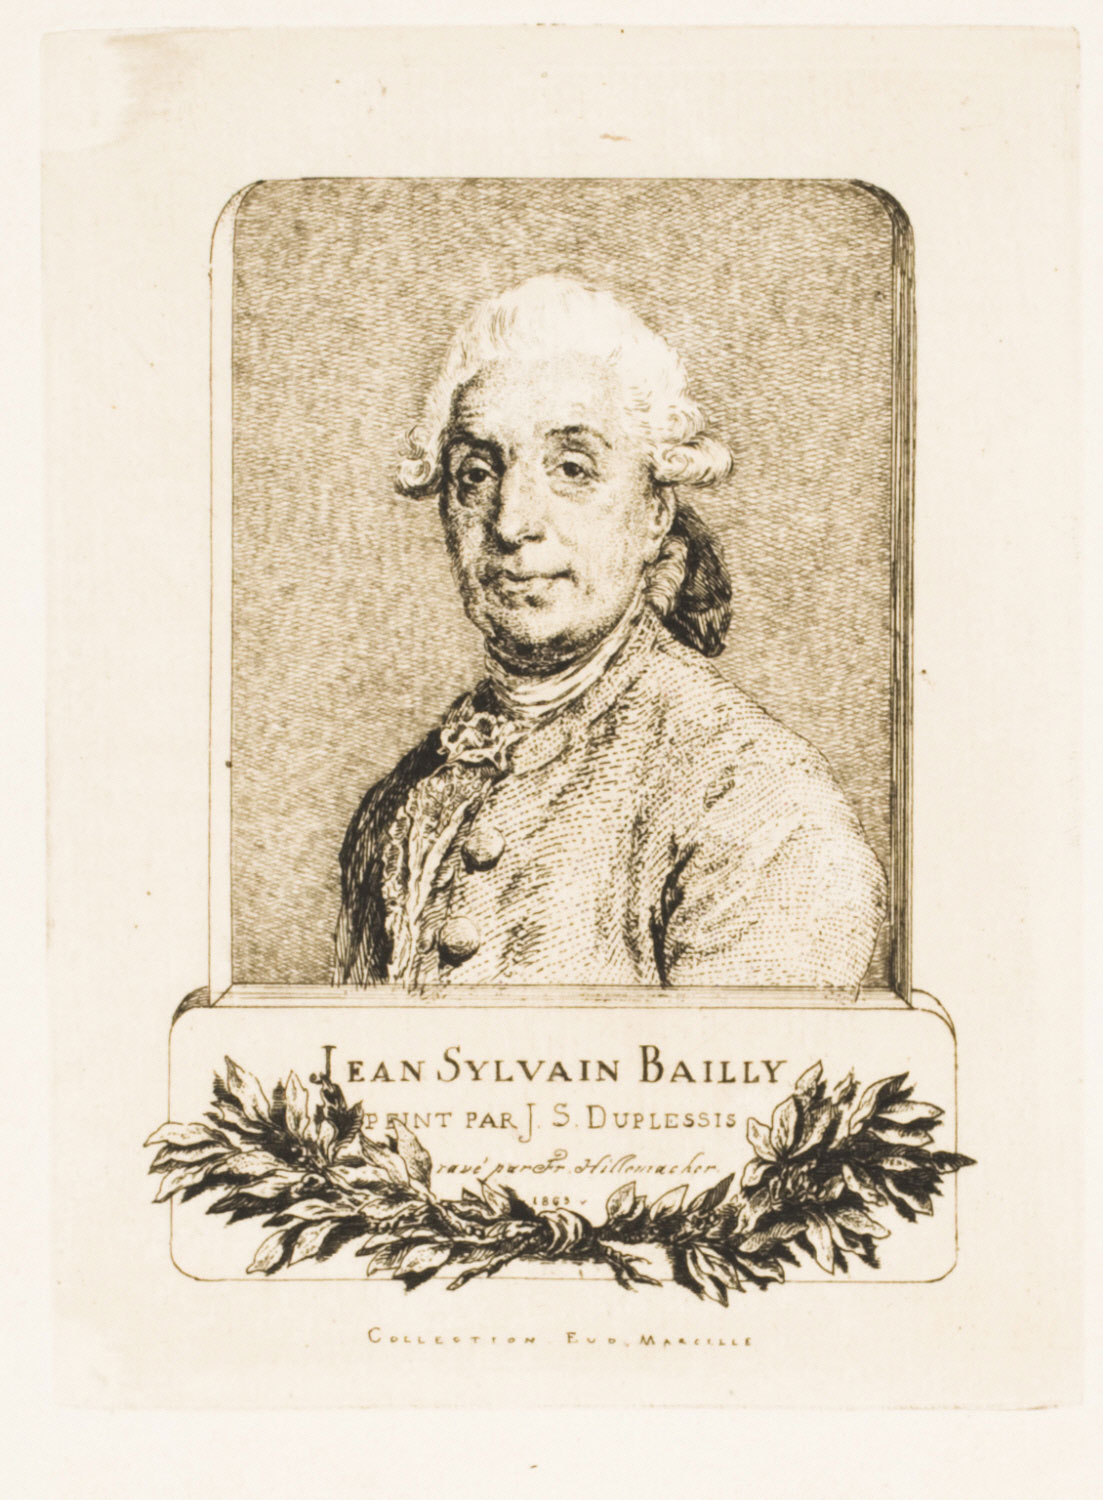 Portrait of Jean Sylvain Bailly (1736 - 1794), French Astronomer and Orator